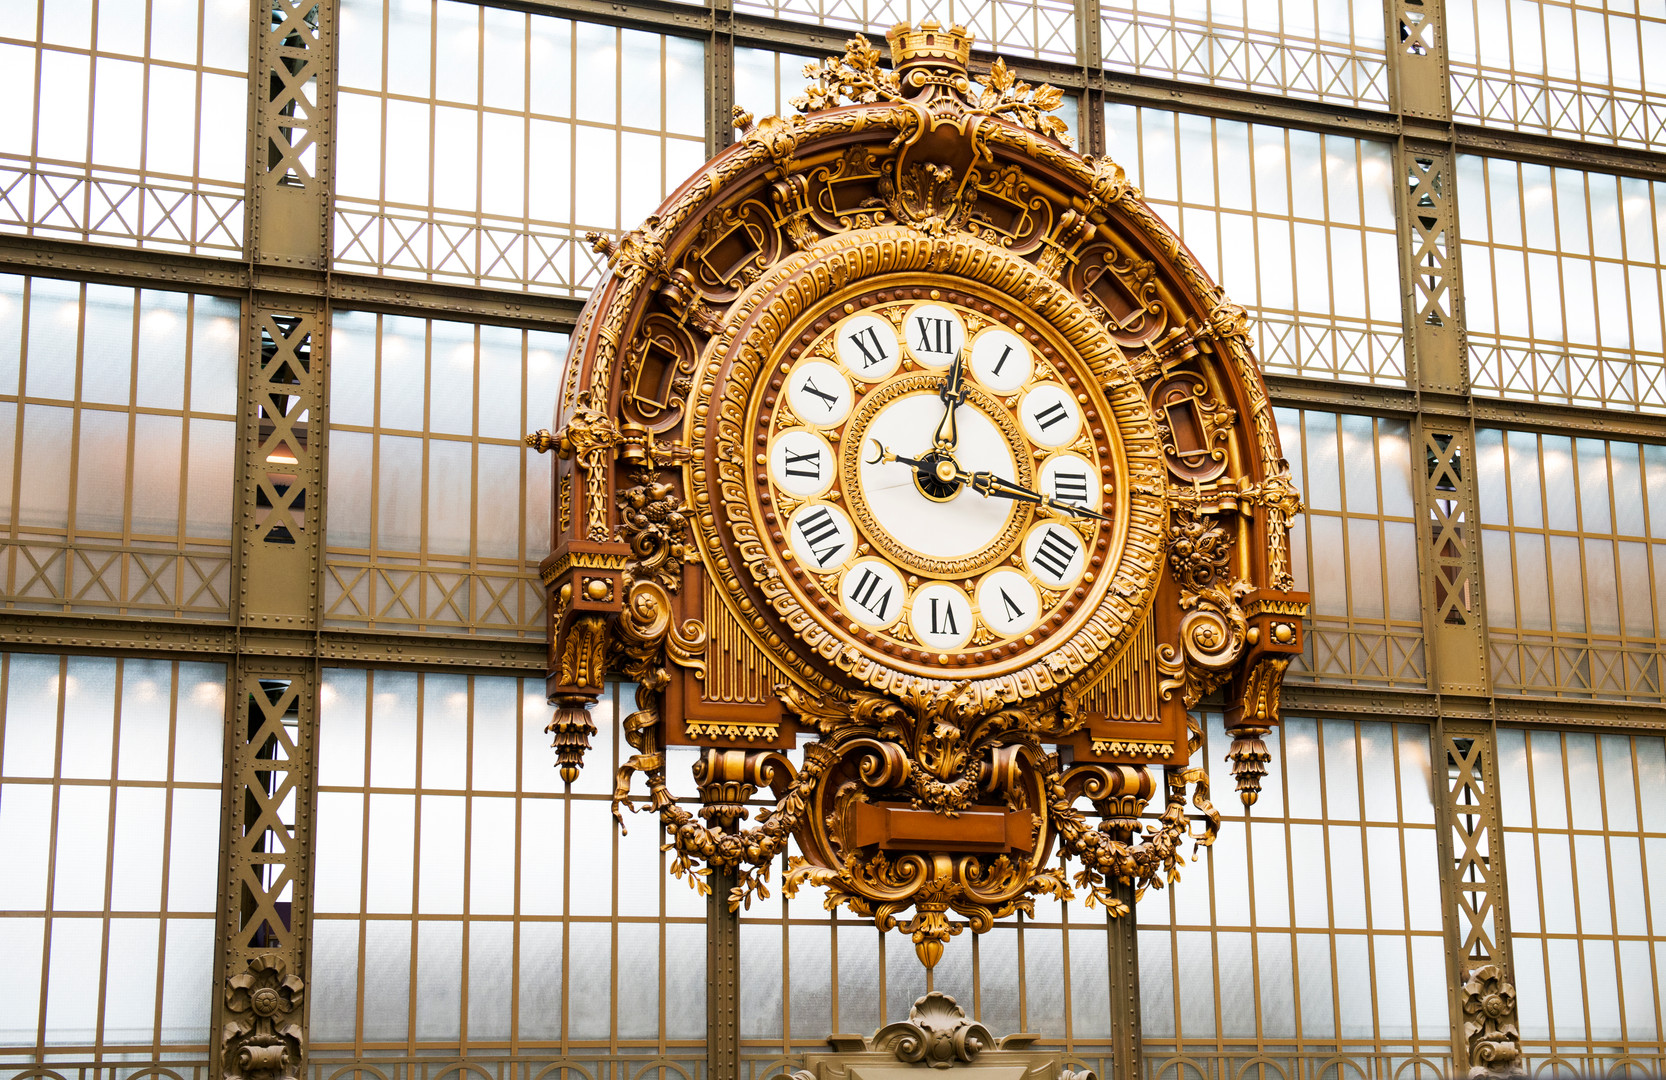 the clock in Musée d'Orsay